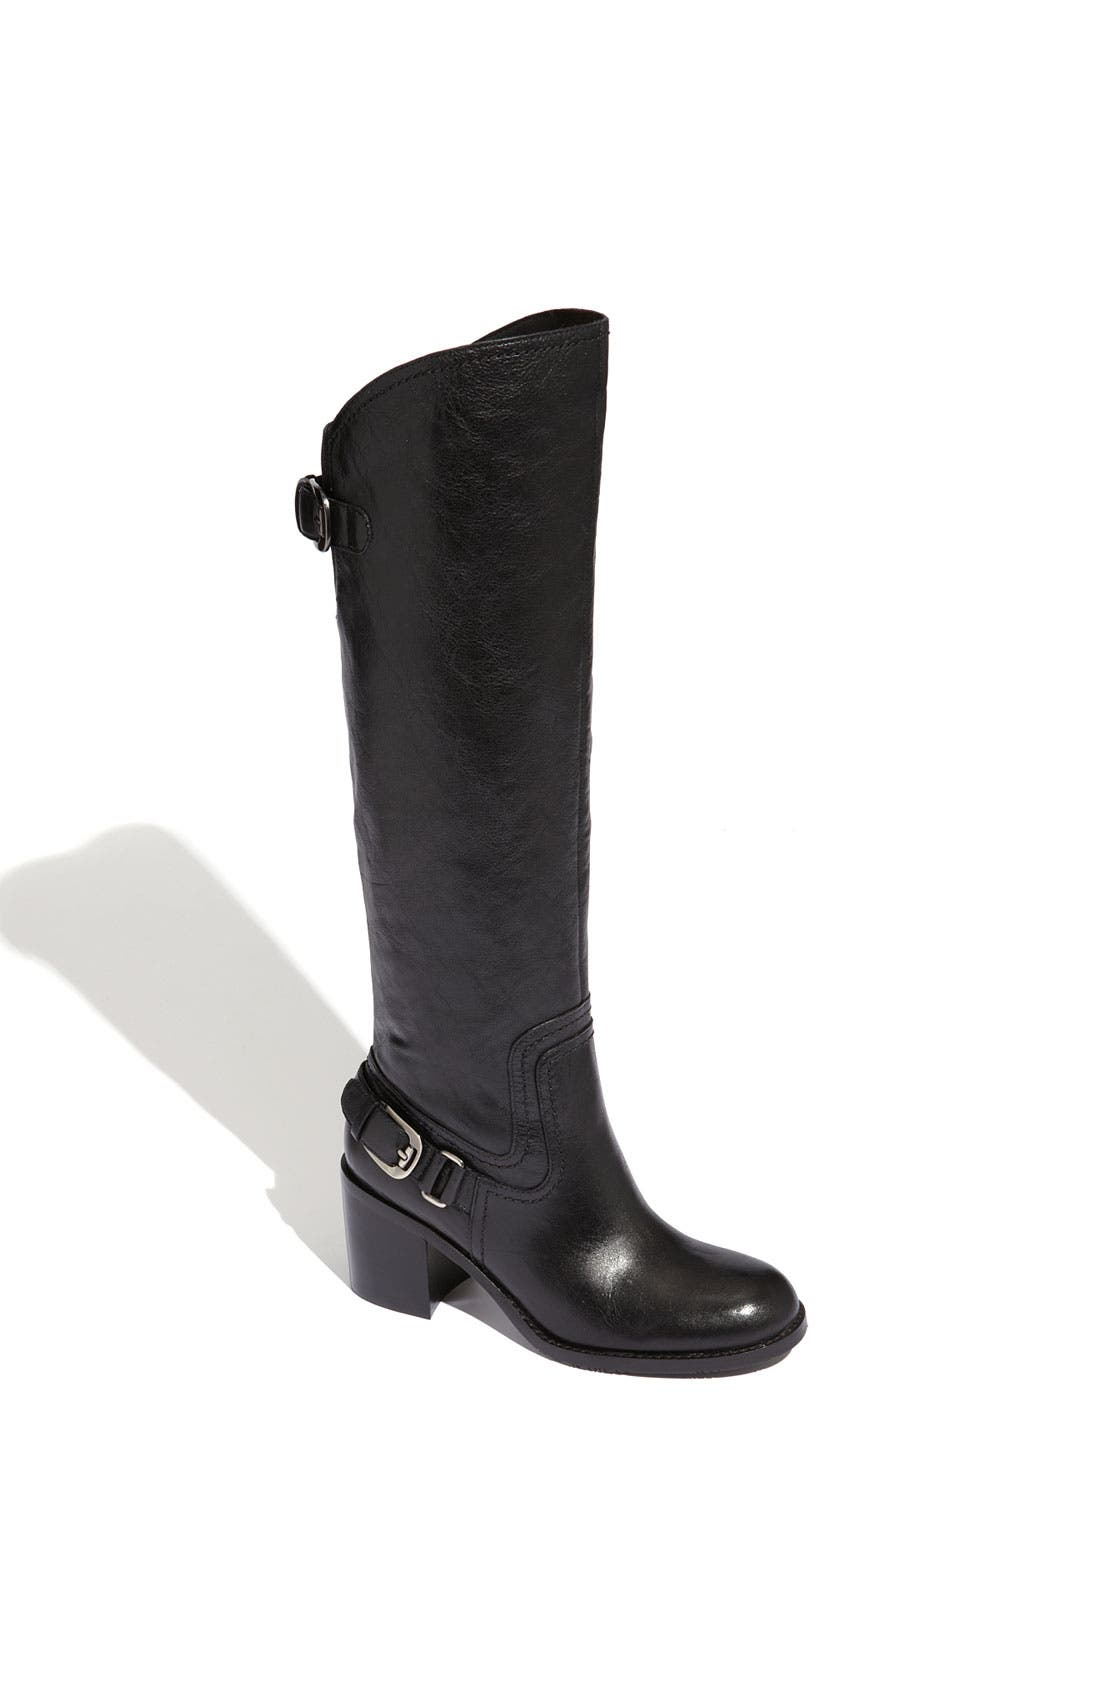 Alternate Image 1 Selected - Franco Sarto 'Tempest' Boot